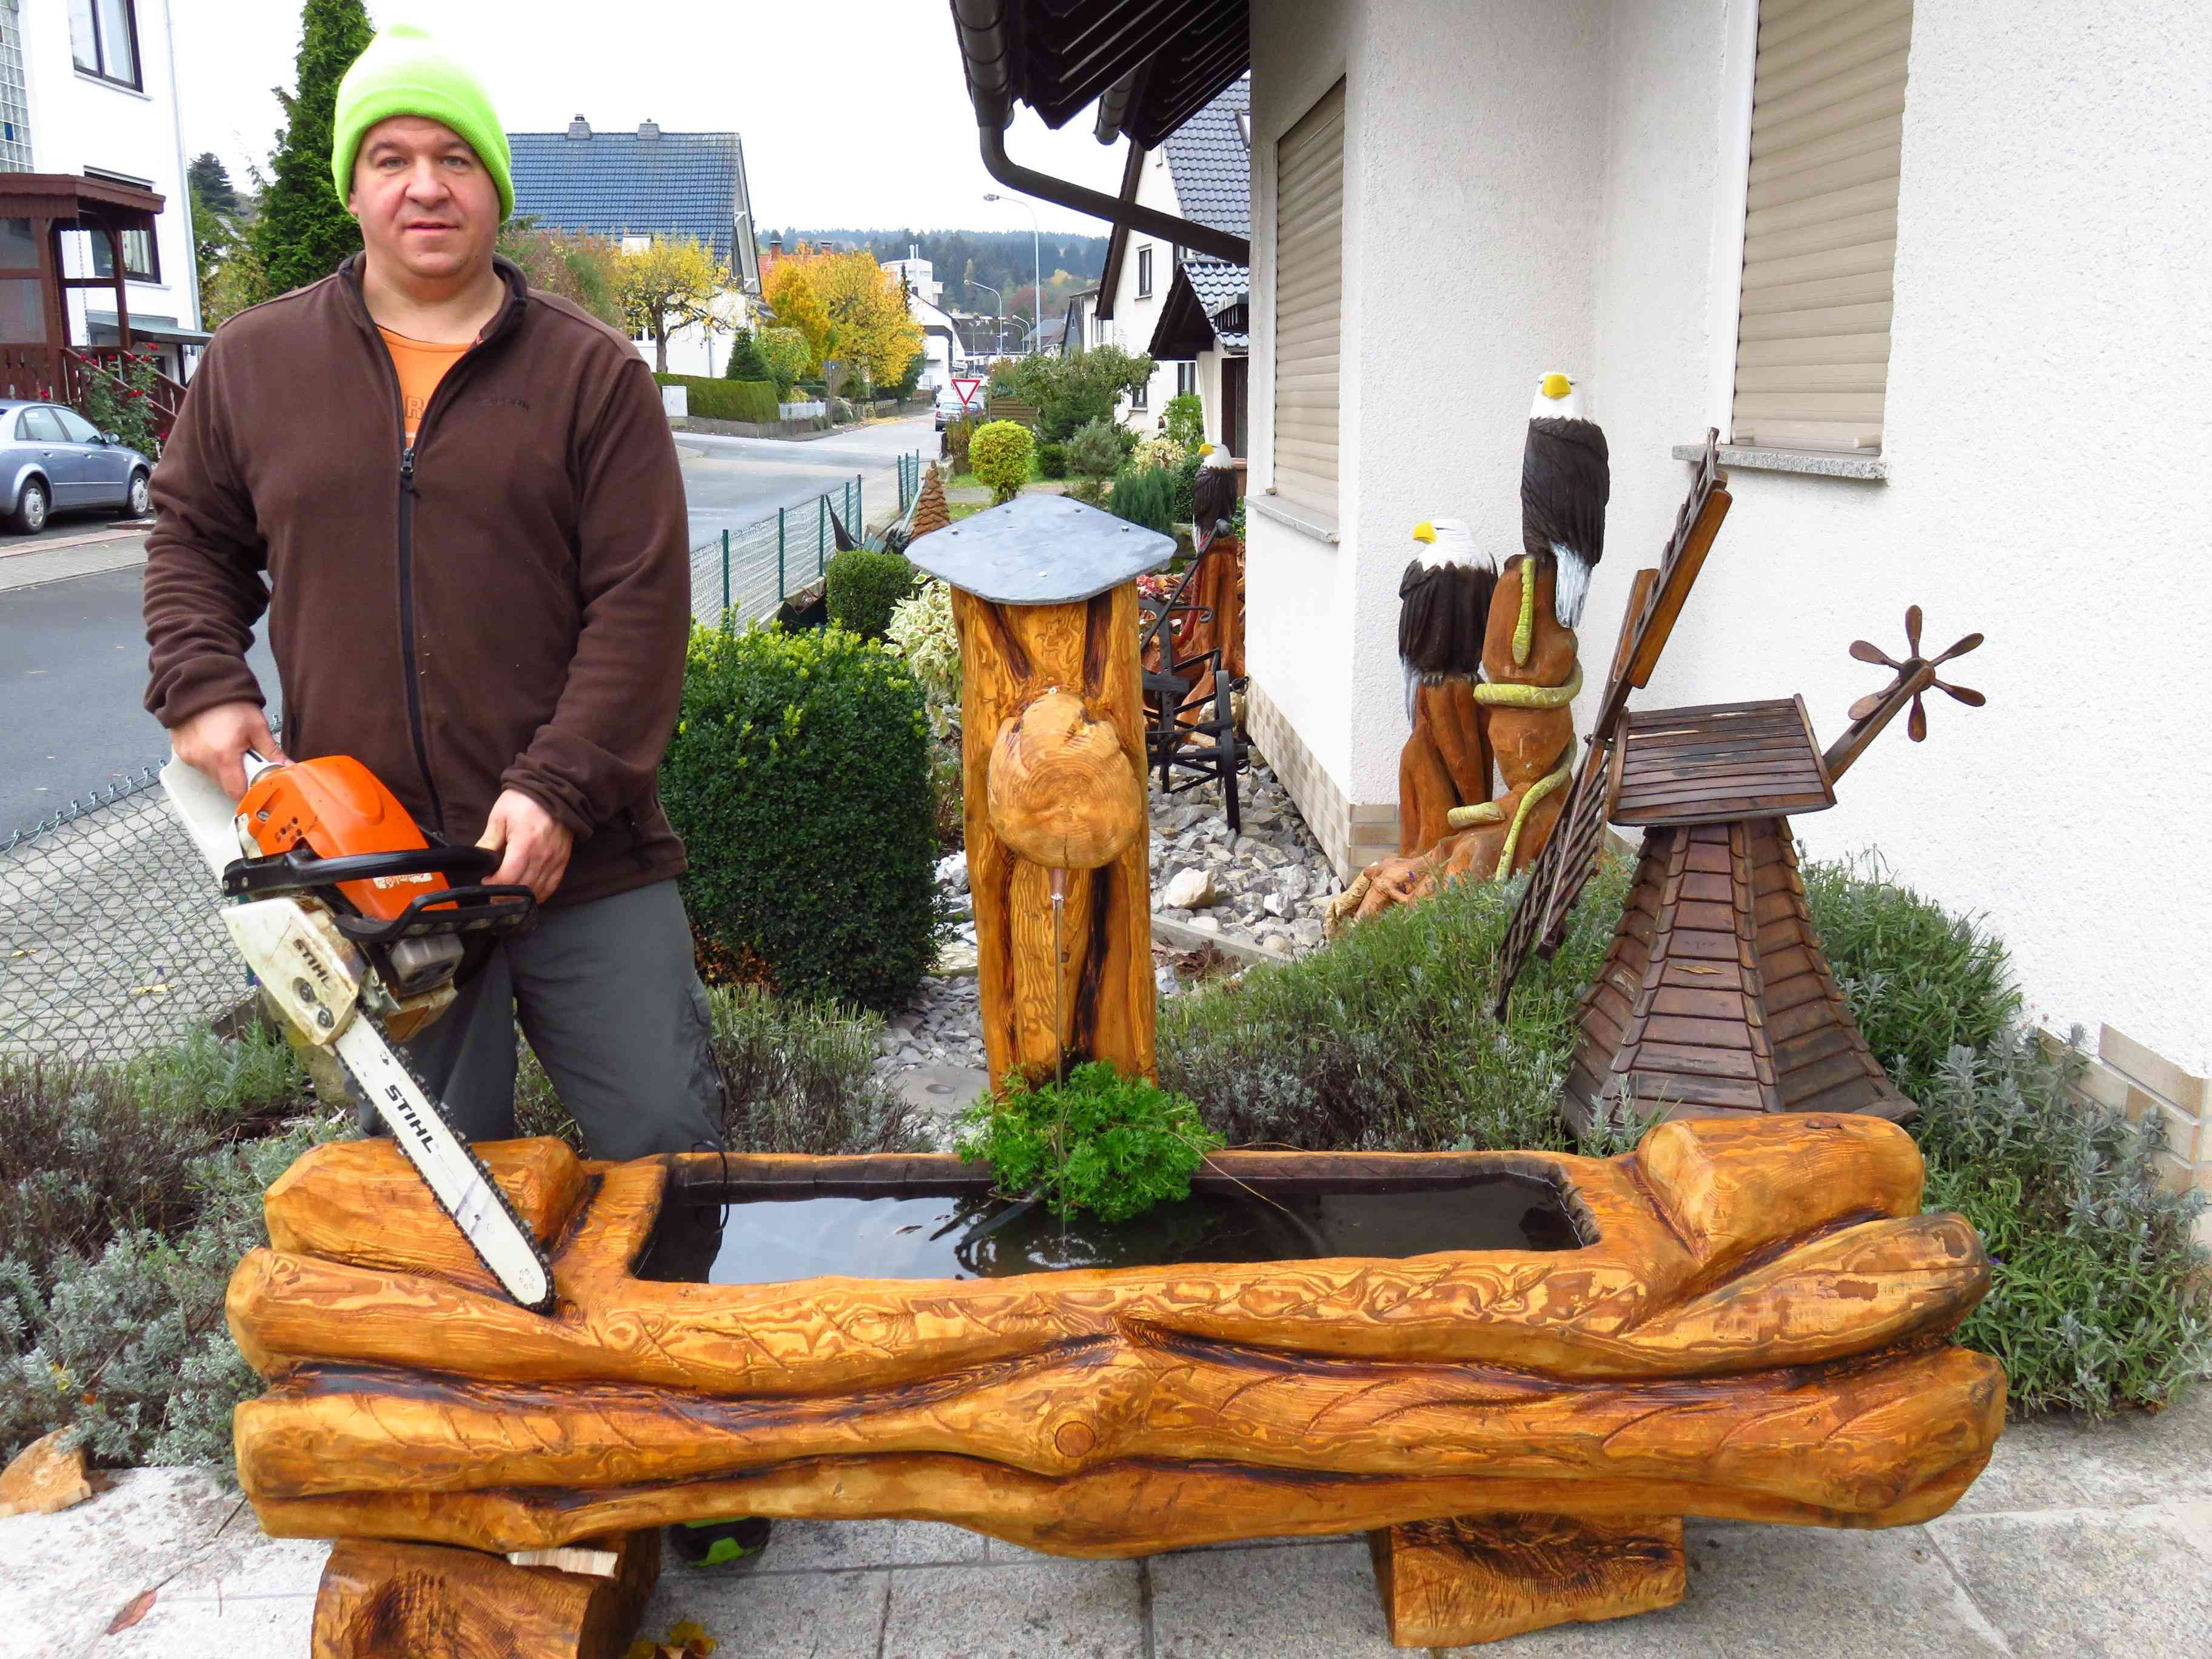 holzbrunnen mit der motors ge geschnitzt chainsaw woodcarving made by larscarving see you on m. Black Bedroom Furniture Sets. Home Design Ideas